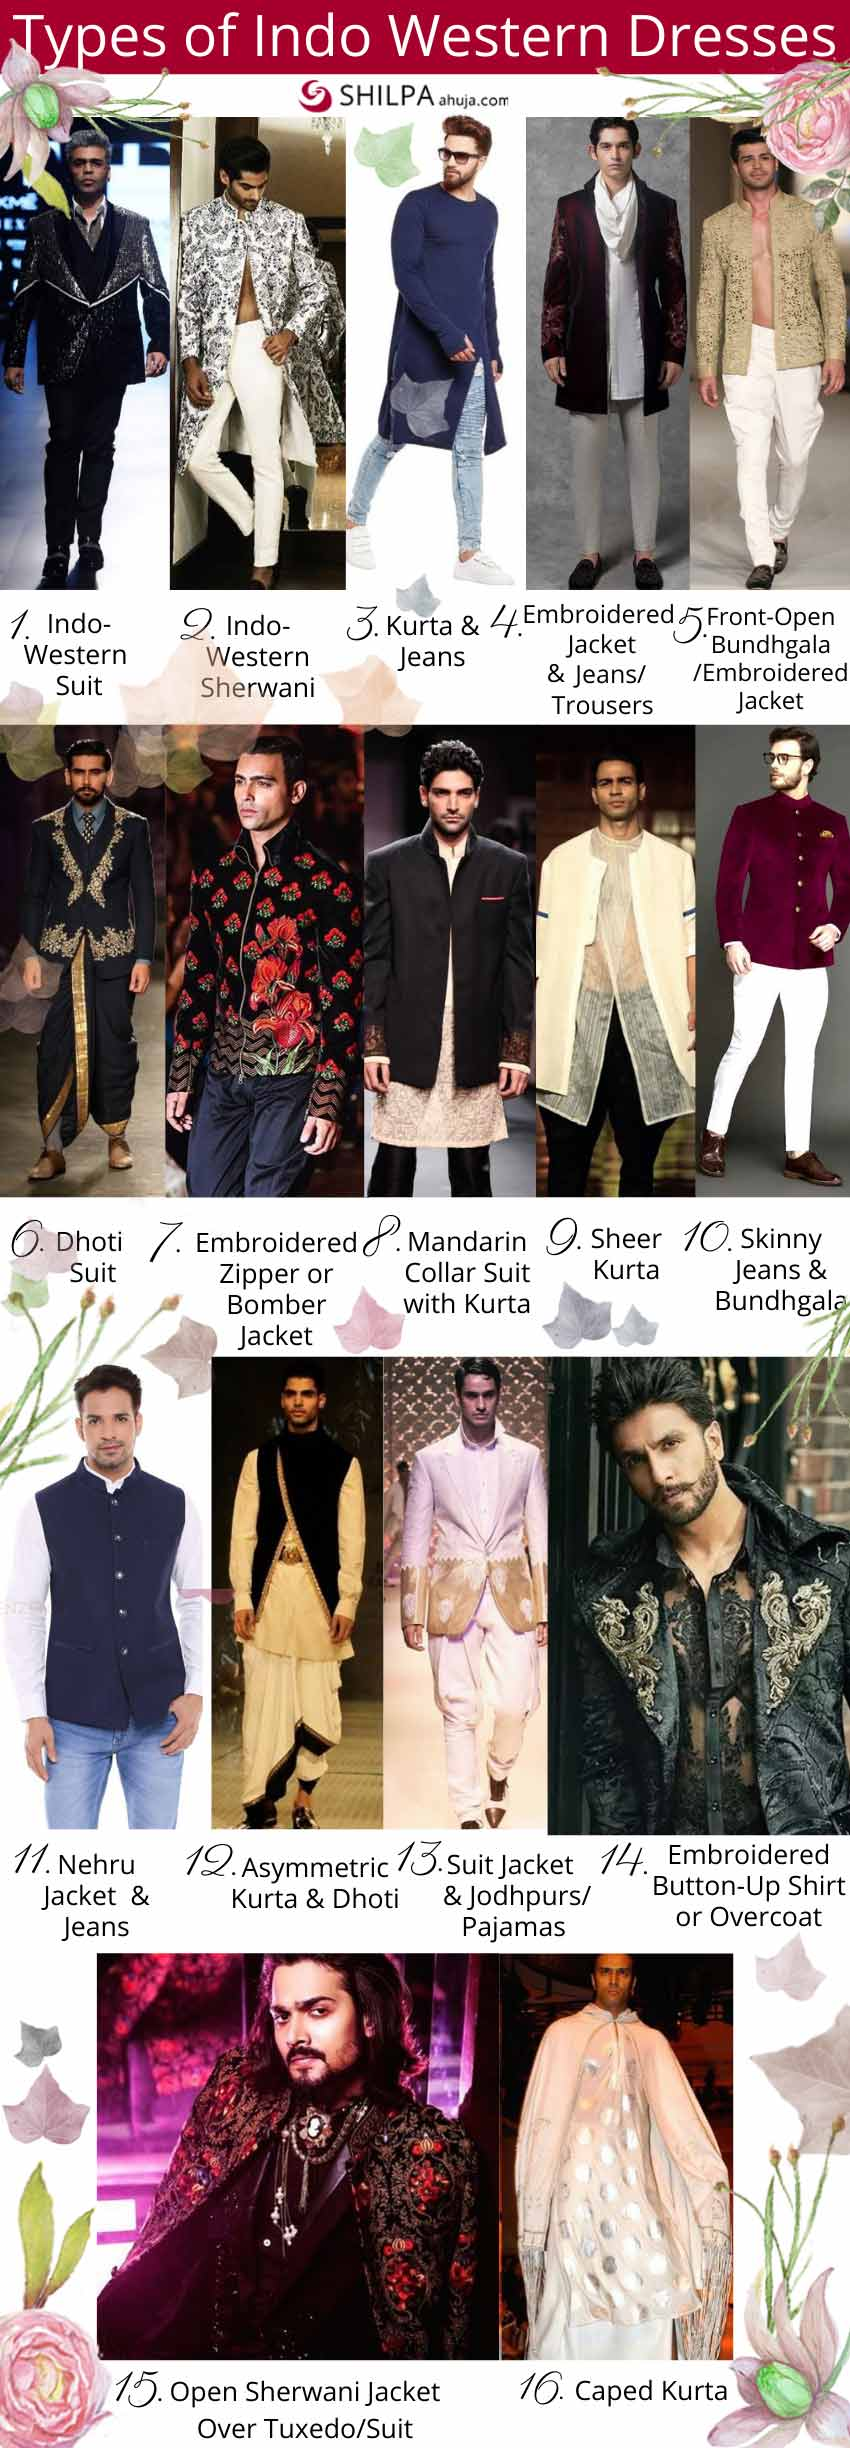 Types-of-Indo-western-dresses-for-men-groom wedding sherwani